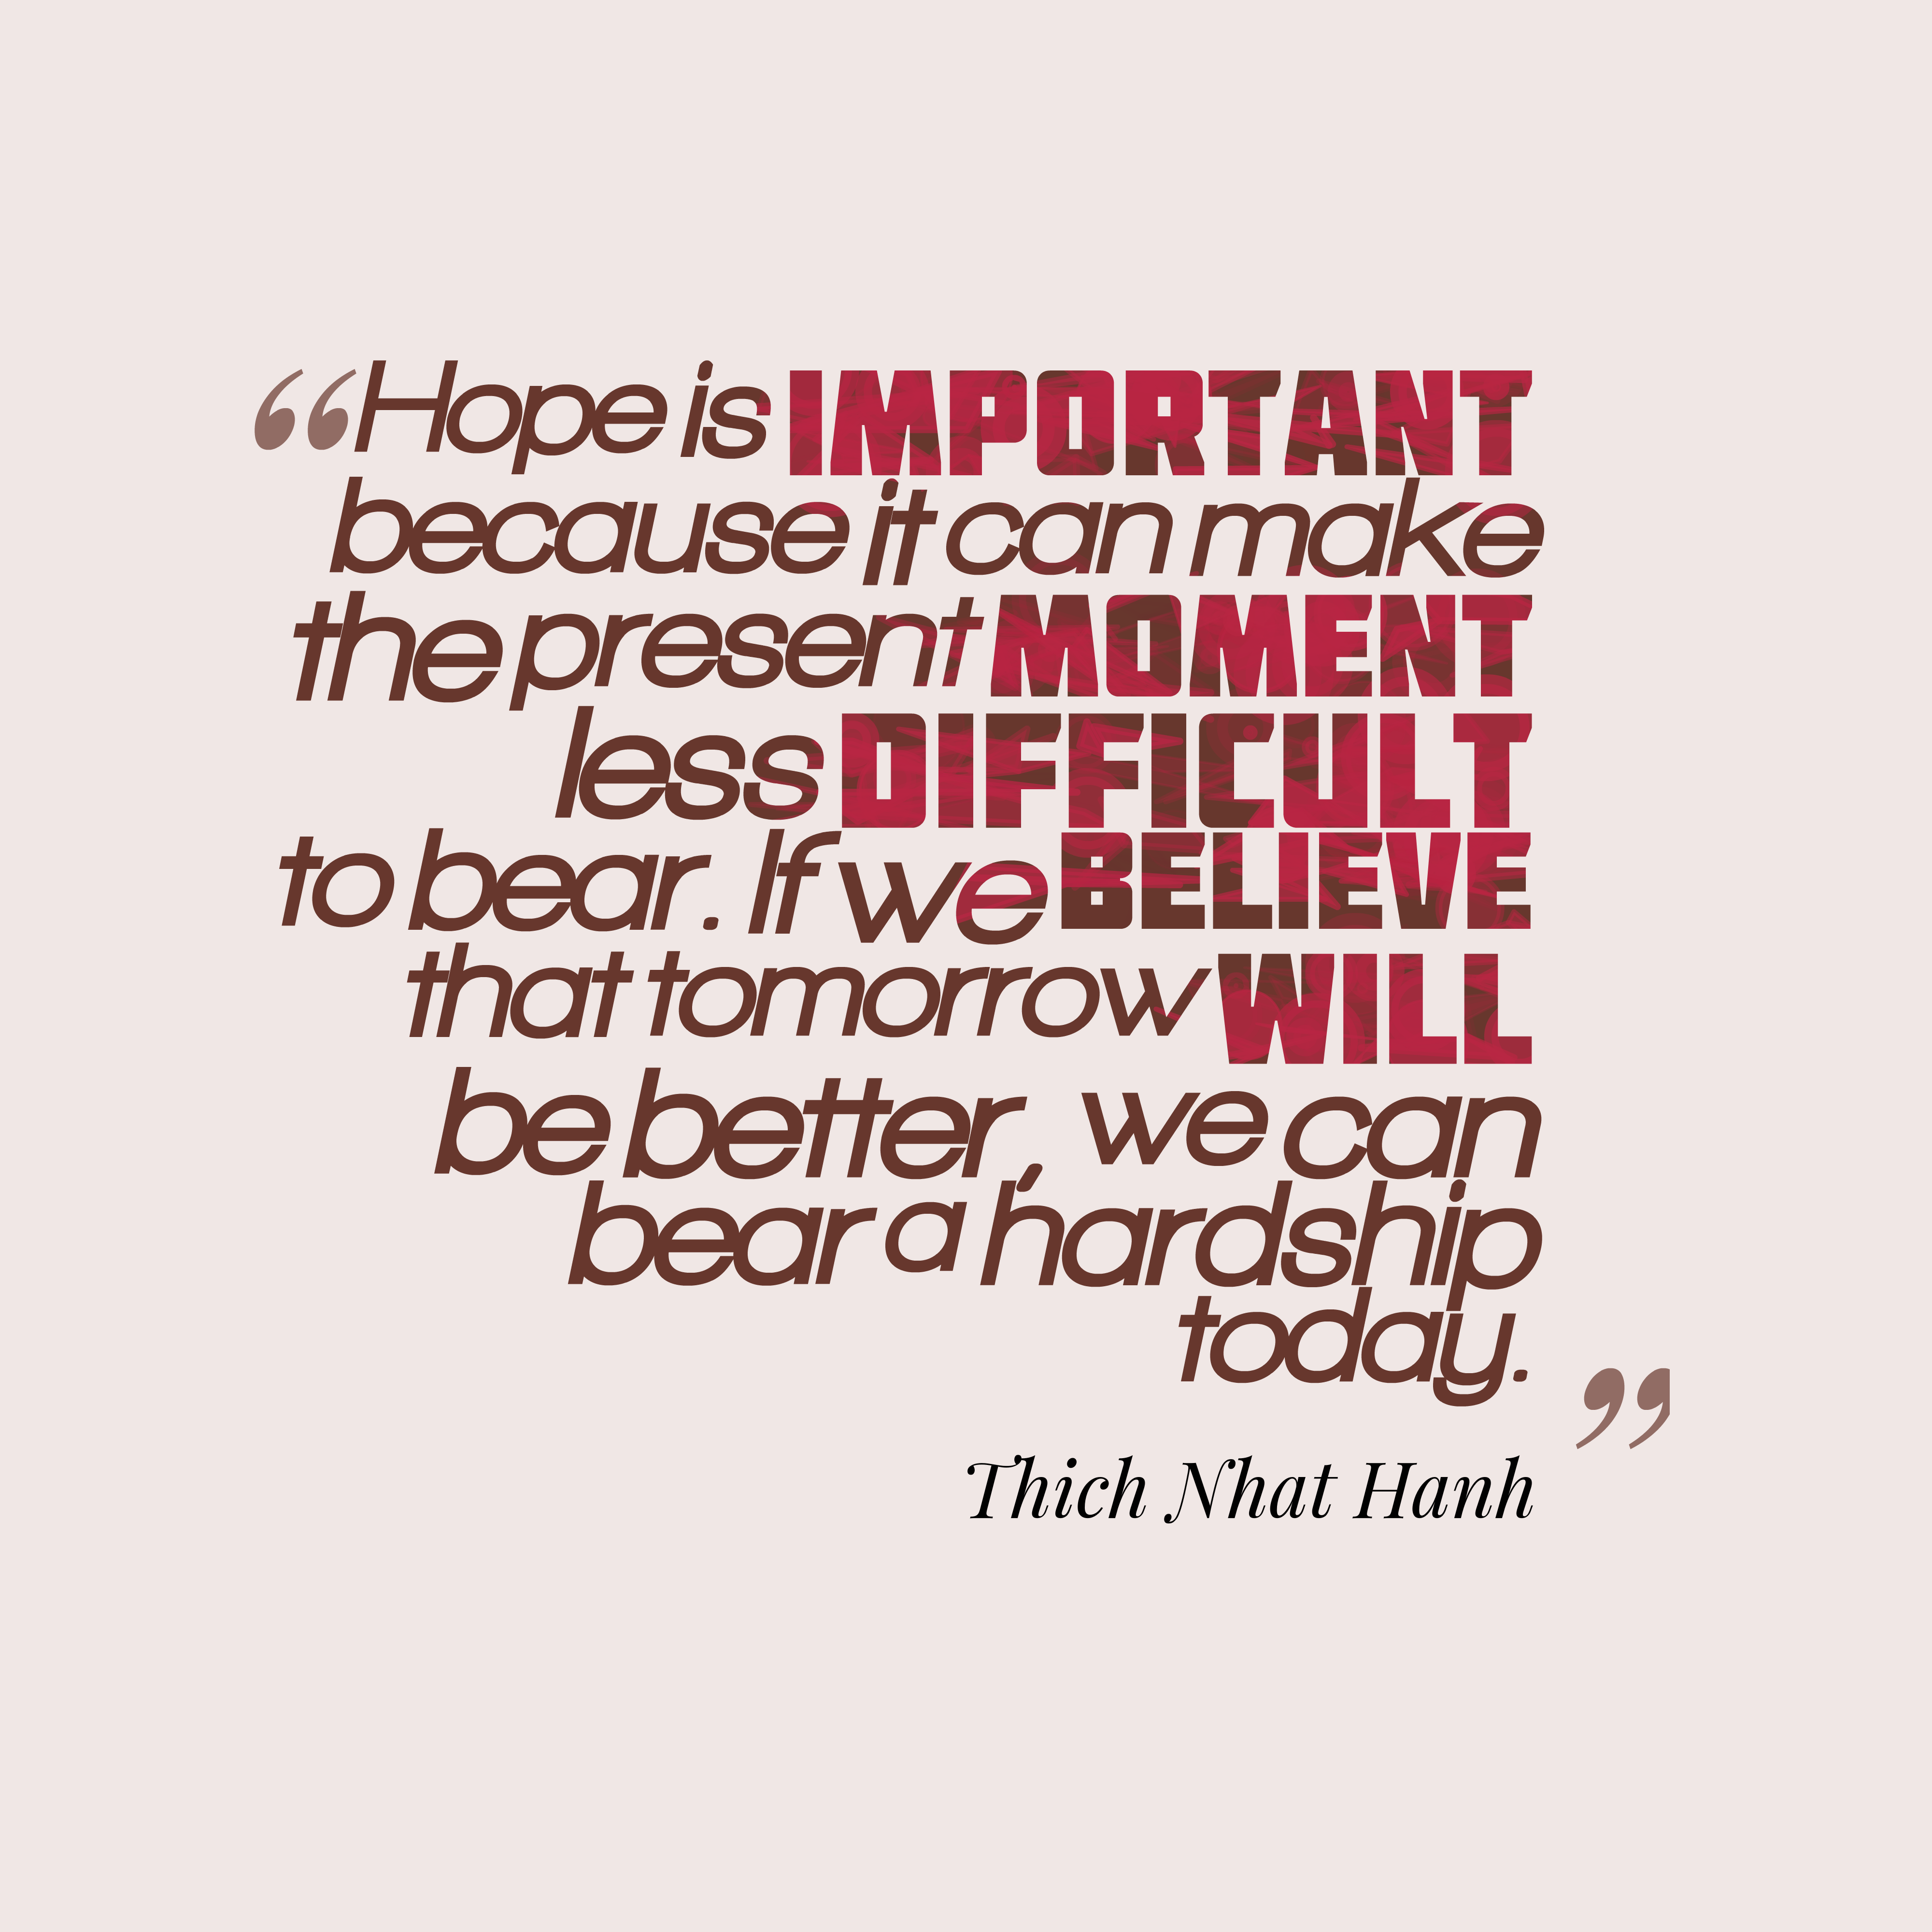 Quotes image of Hope is important because it can make the present moment less difficult to bear. If we believe that tomorrow will be better, we can bear a hardship today.